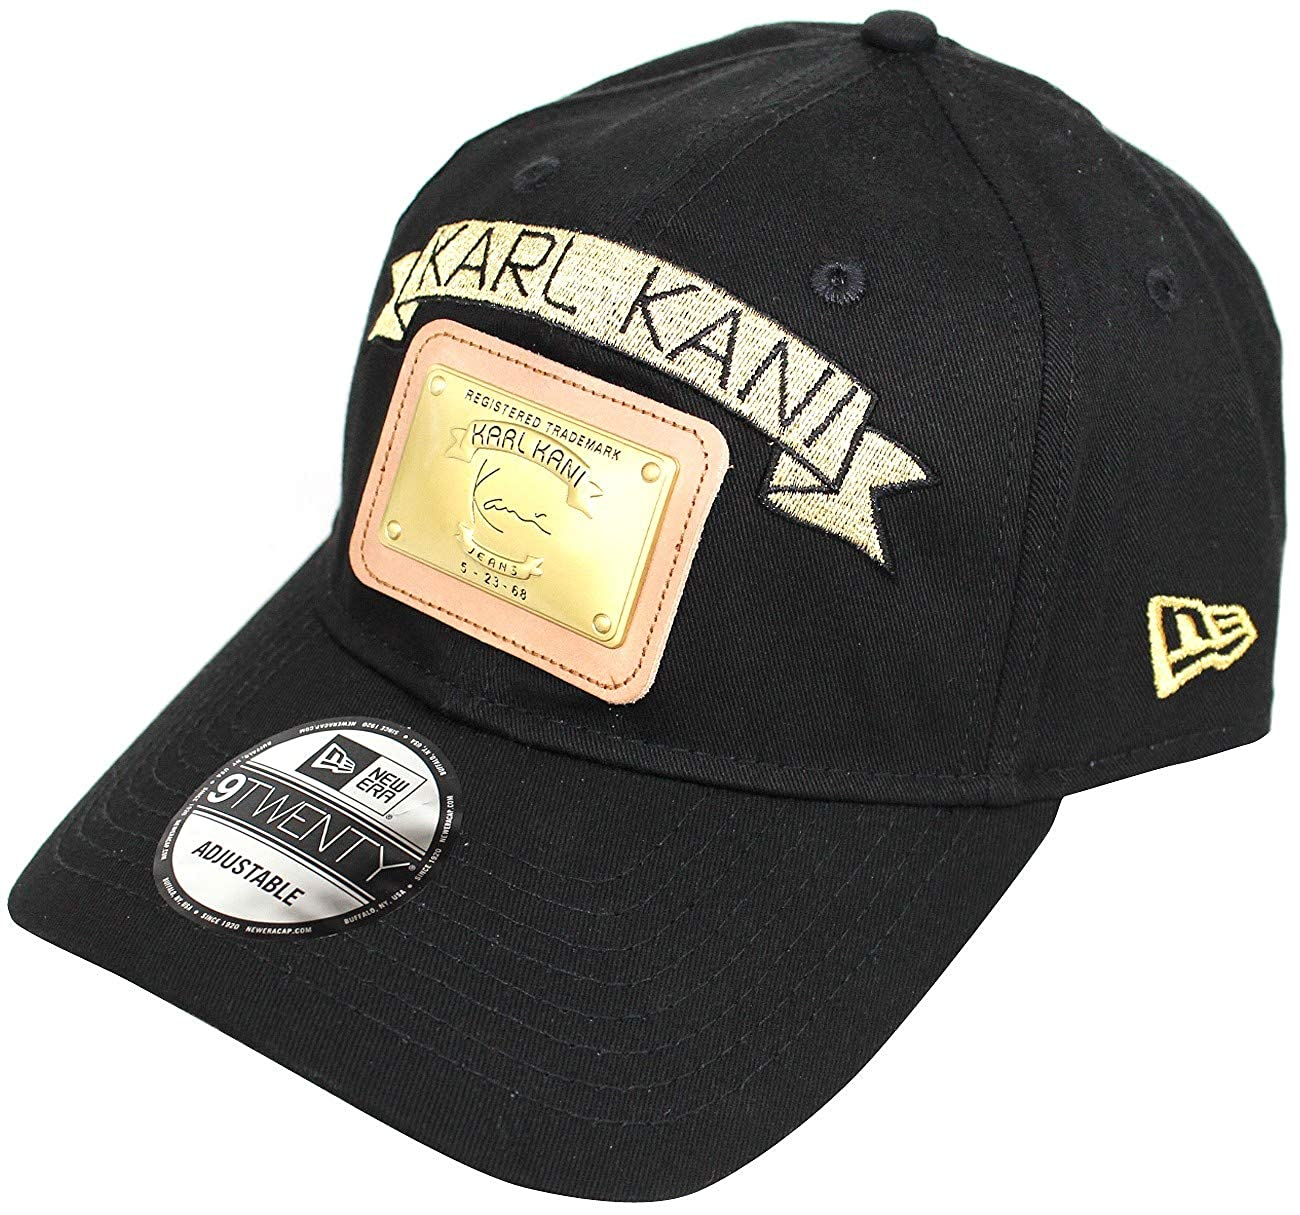 Karl Kani New Era Gold Plate Dad Hat Embroidered Baseball Cap Black Red  White at Amazon Men s Clothing store  1e2a69a5788